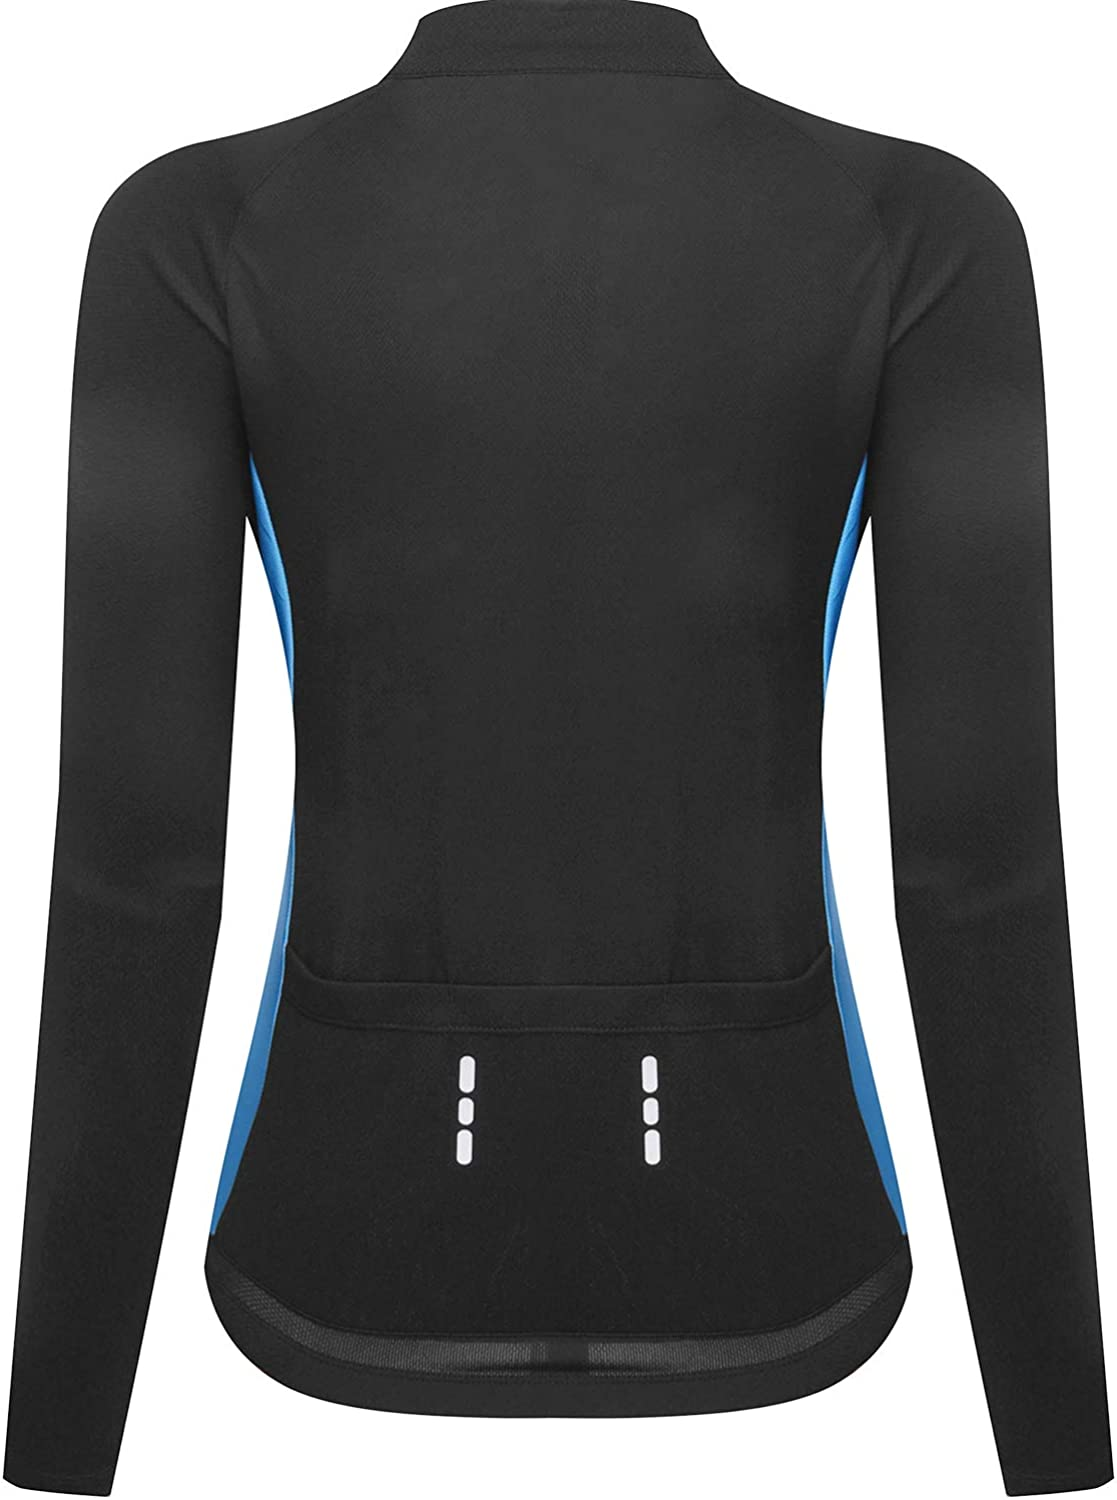 NOOYME Womens Wicking Cycling Jersey with Three Back Pockets